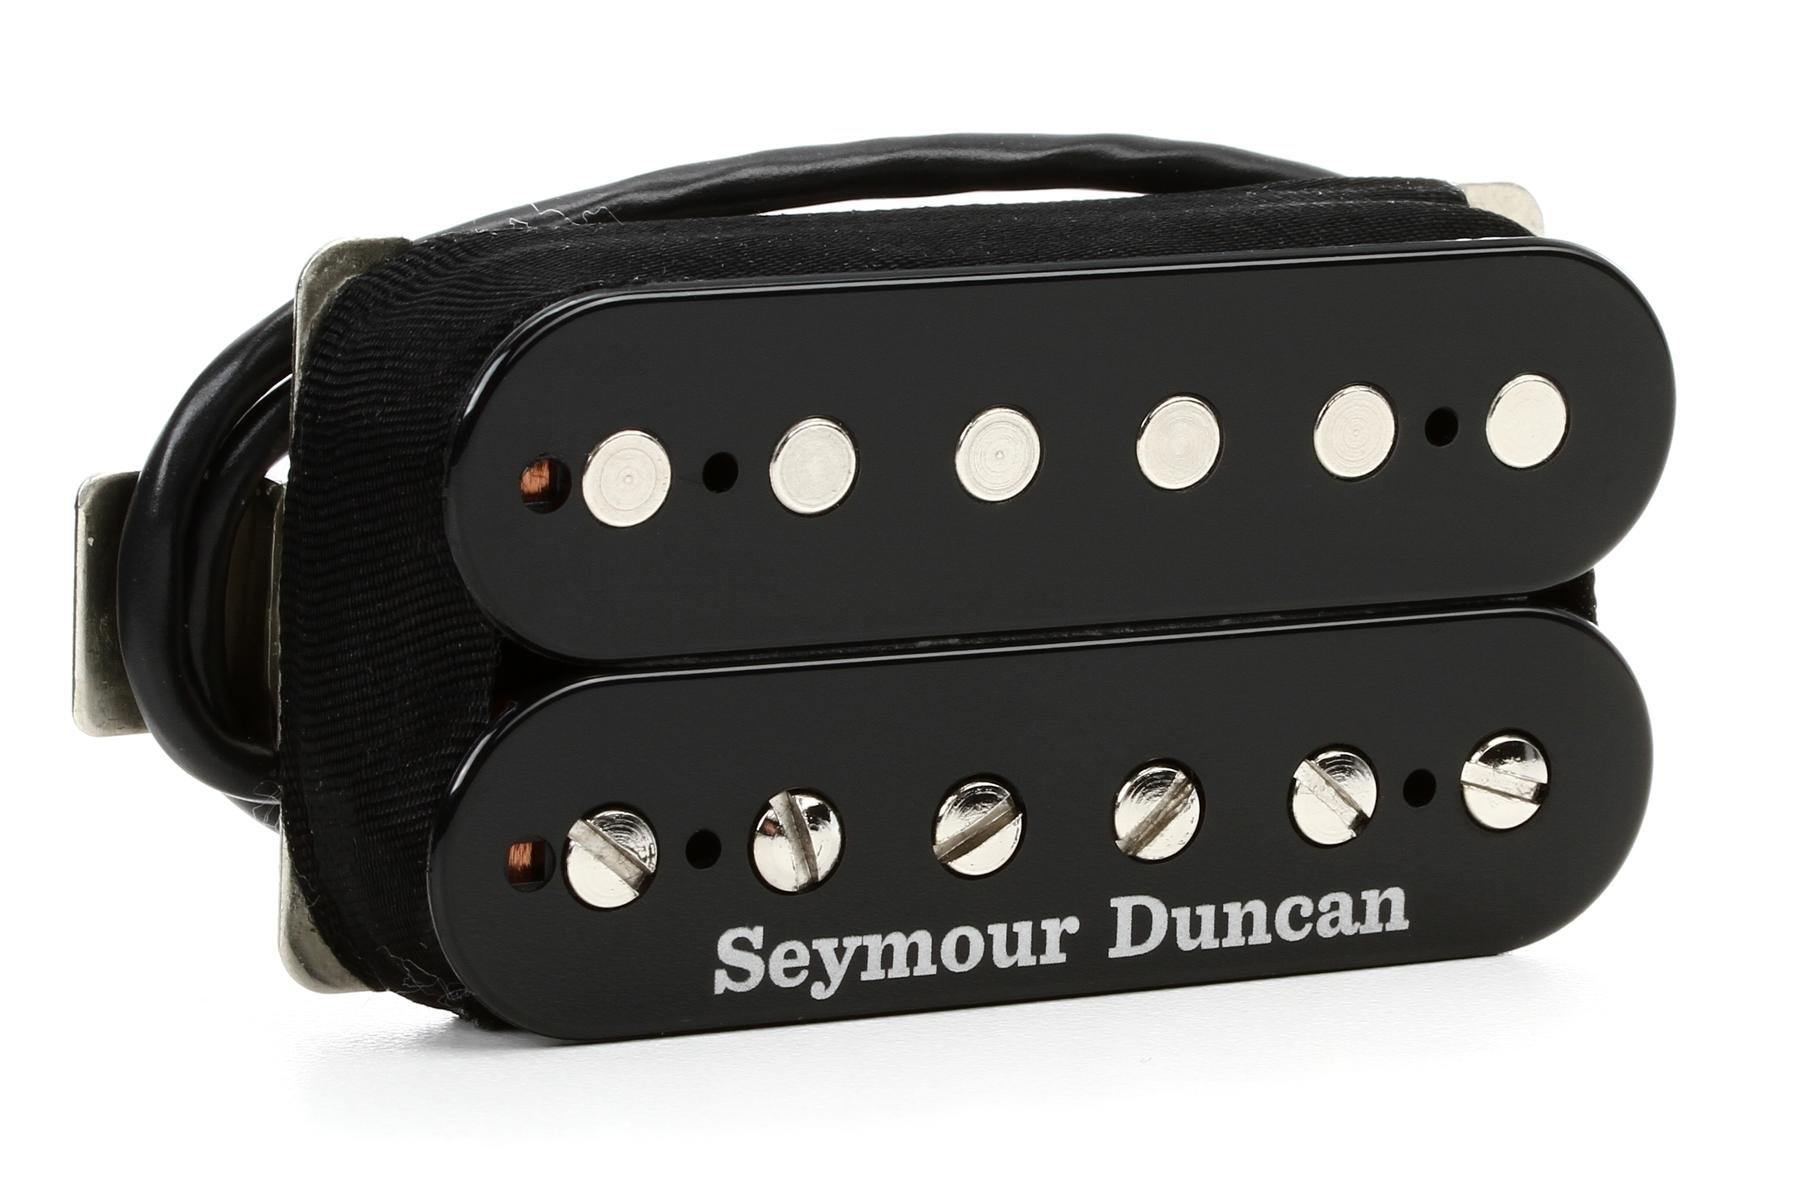 Seymour Duncan SH-6b Duncan Distortion Humbucker Pickup - Black ...